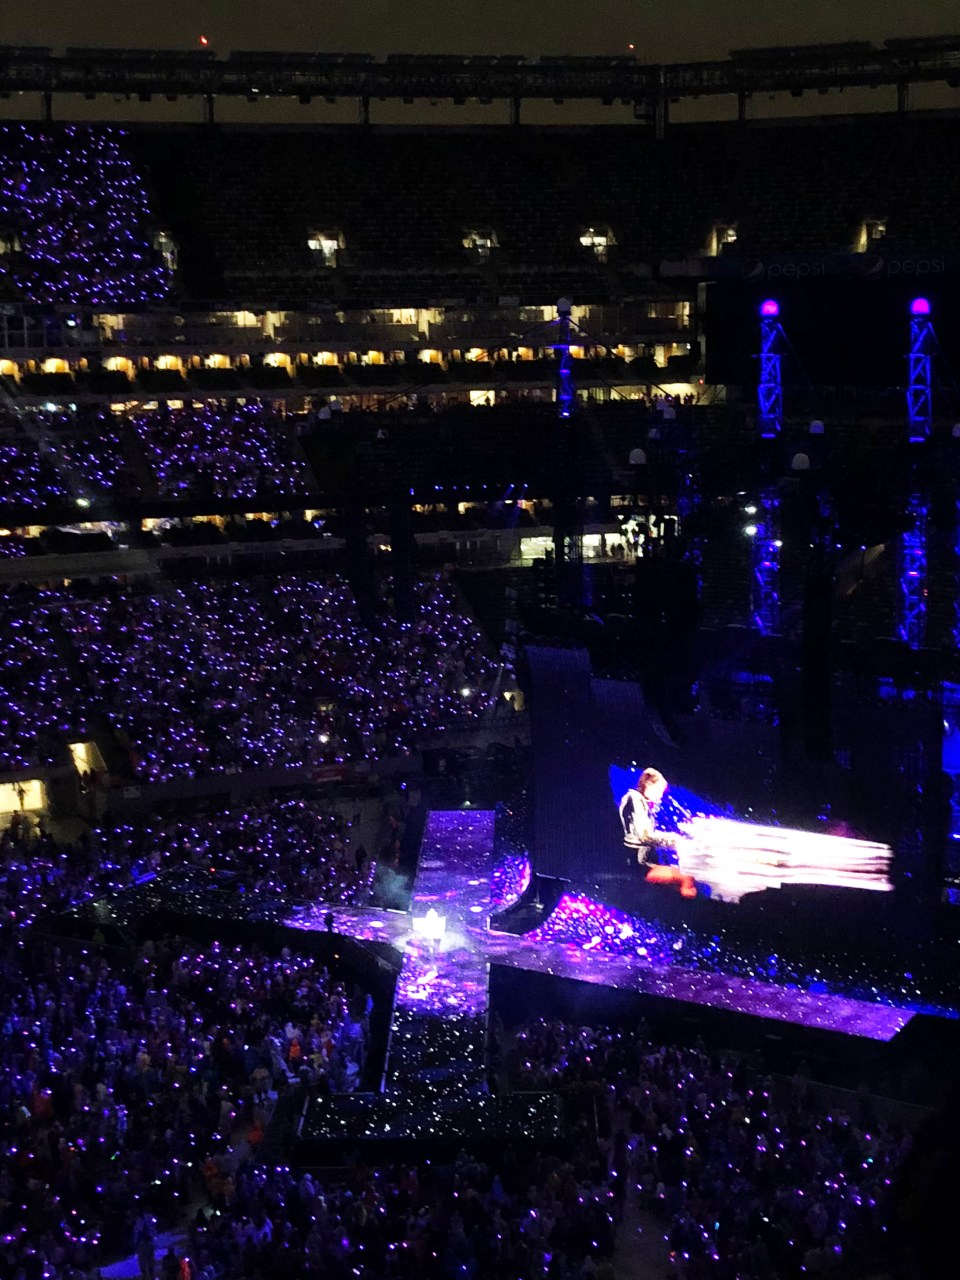 Taylor Swift Reputation Tour - East Rutherford 8